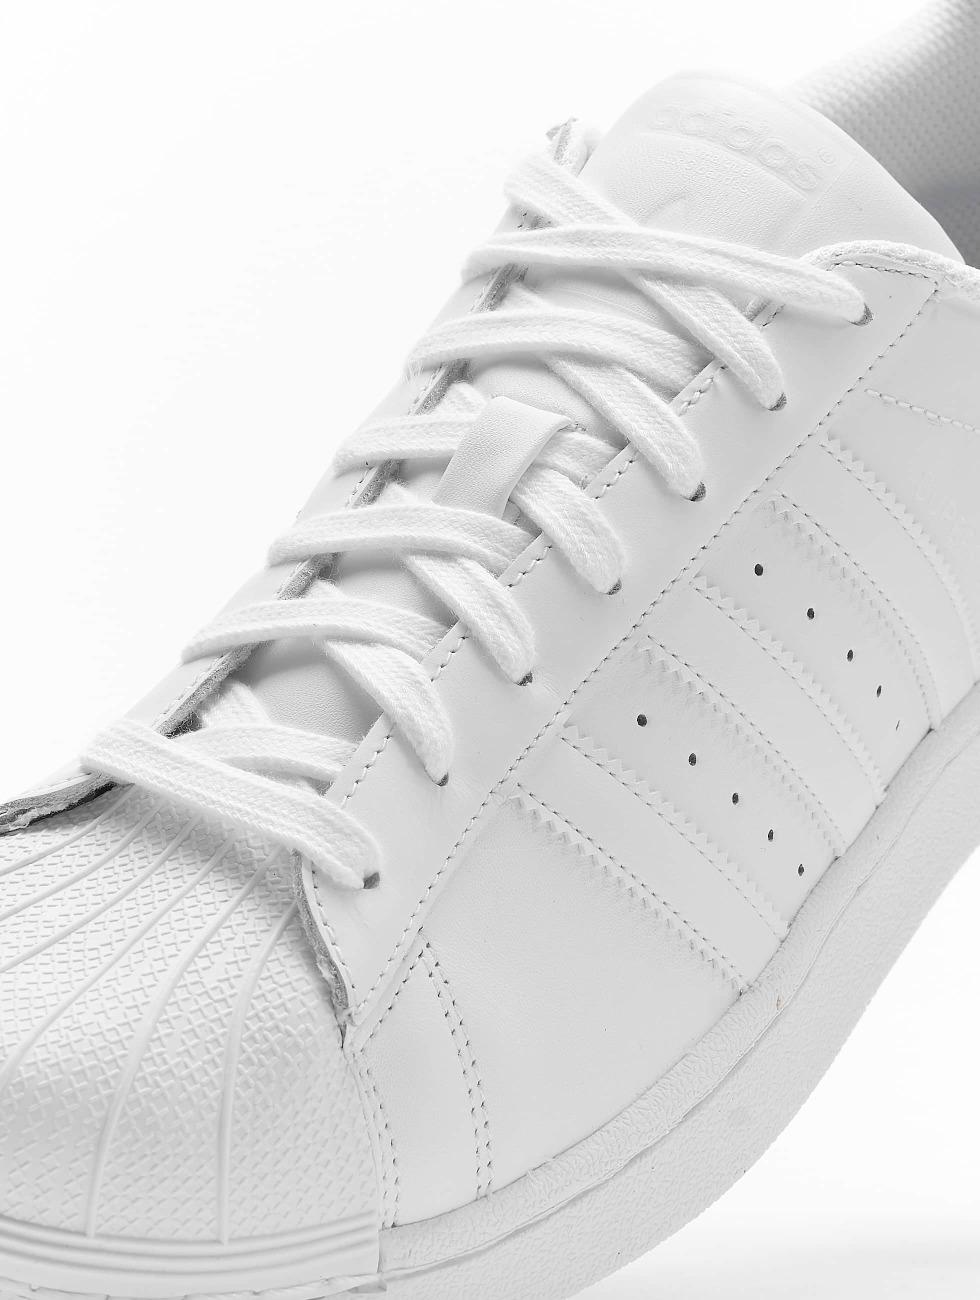 adidas originals schoen / sneaker Superstar Founda in wit 154065 Lage Prijzen Outlet Store Te Koop Outlet Shop Voor Gratis Verzending Footlocker Finish D7ujBUJQUU